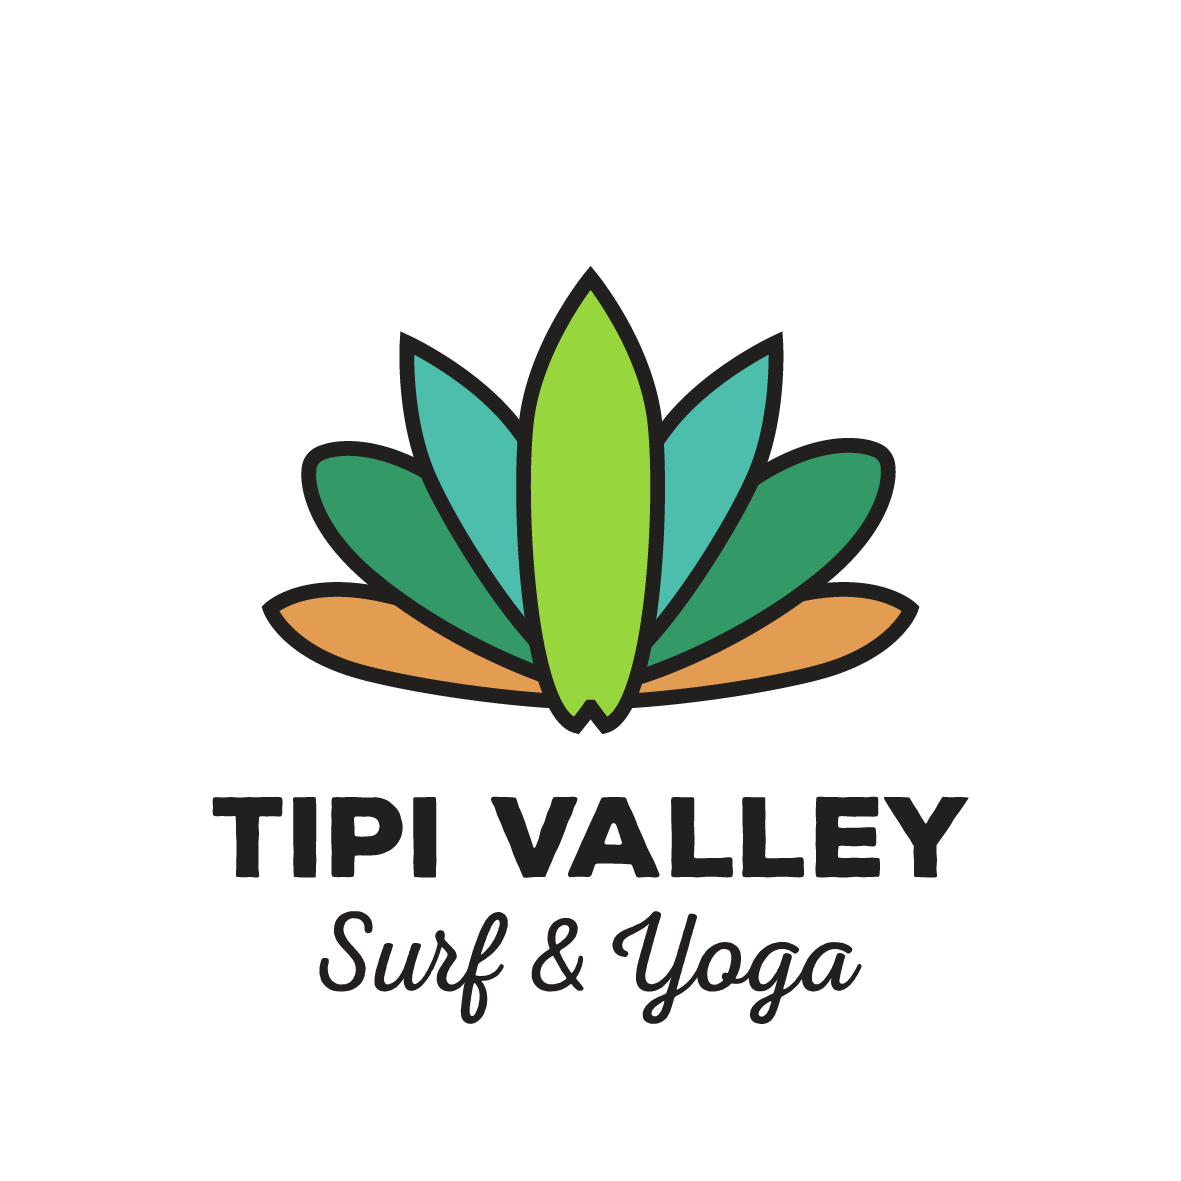 Tipi Valley Surf & Yoga Eco Camp in Algarve, Portugal